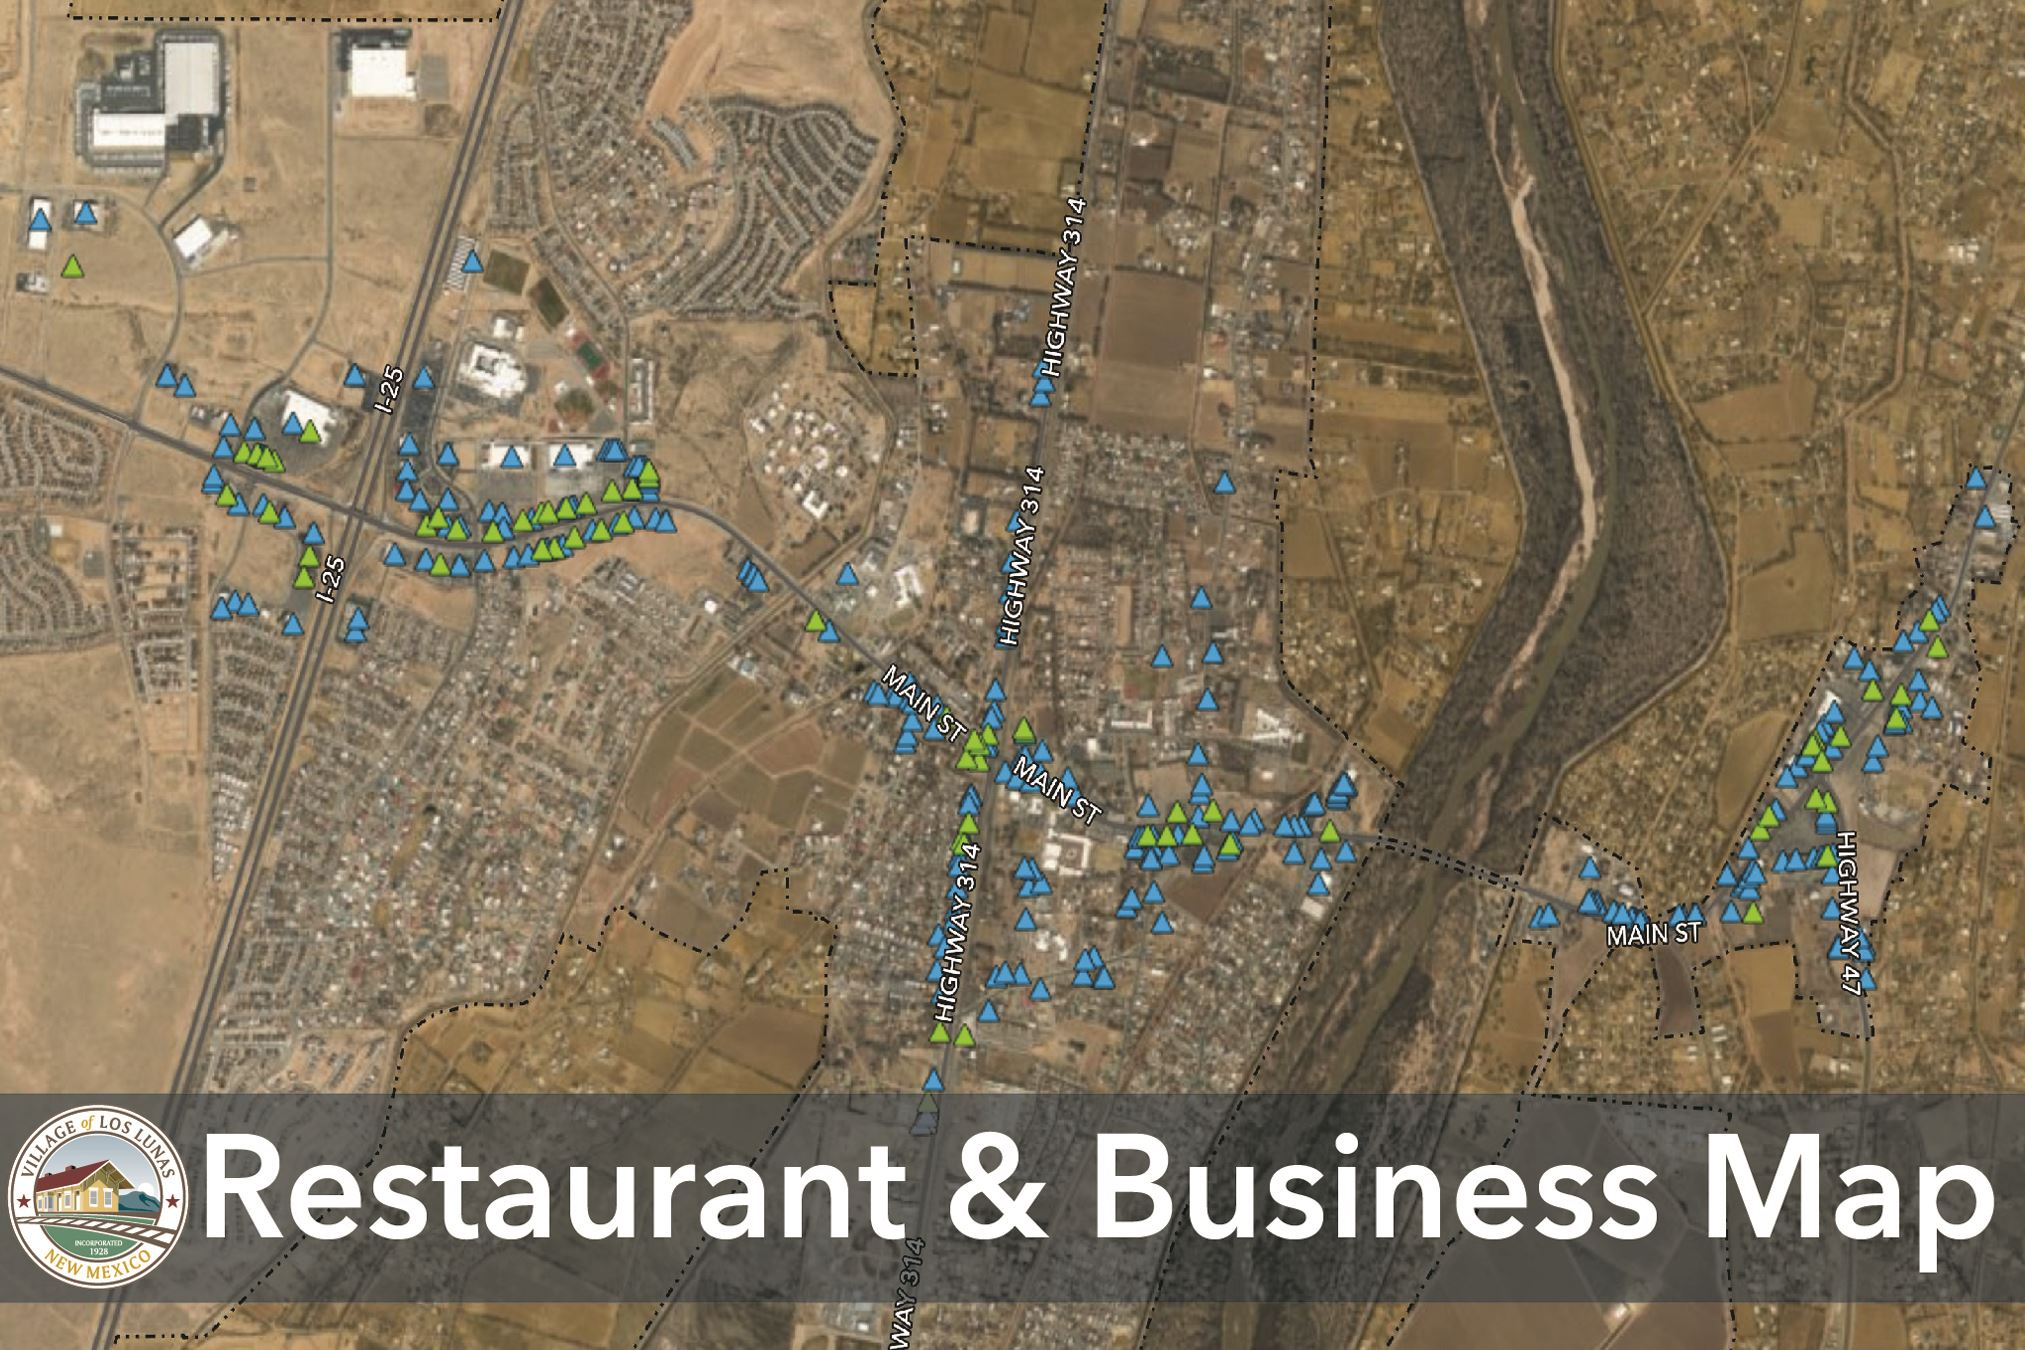 Village of Los Lunas Restaurant and Business Map